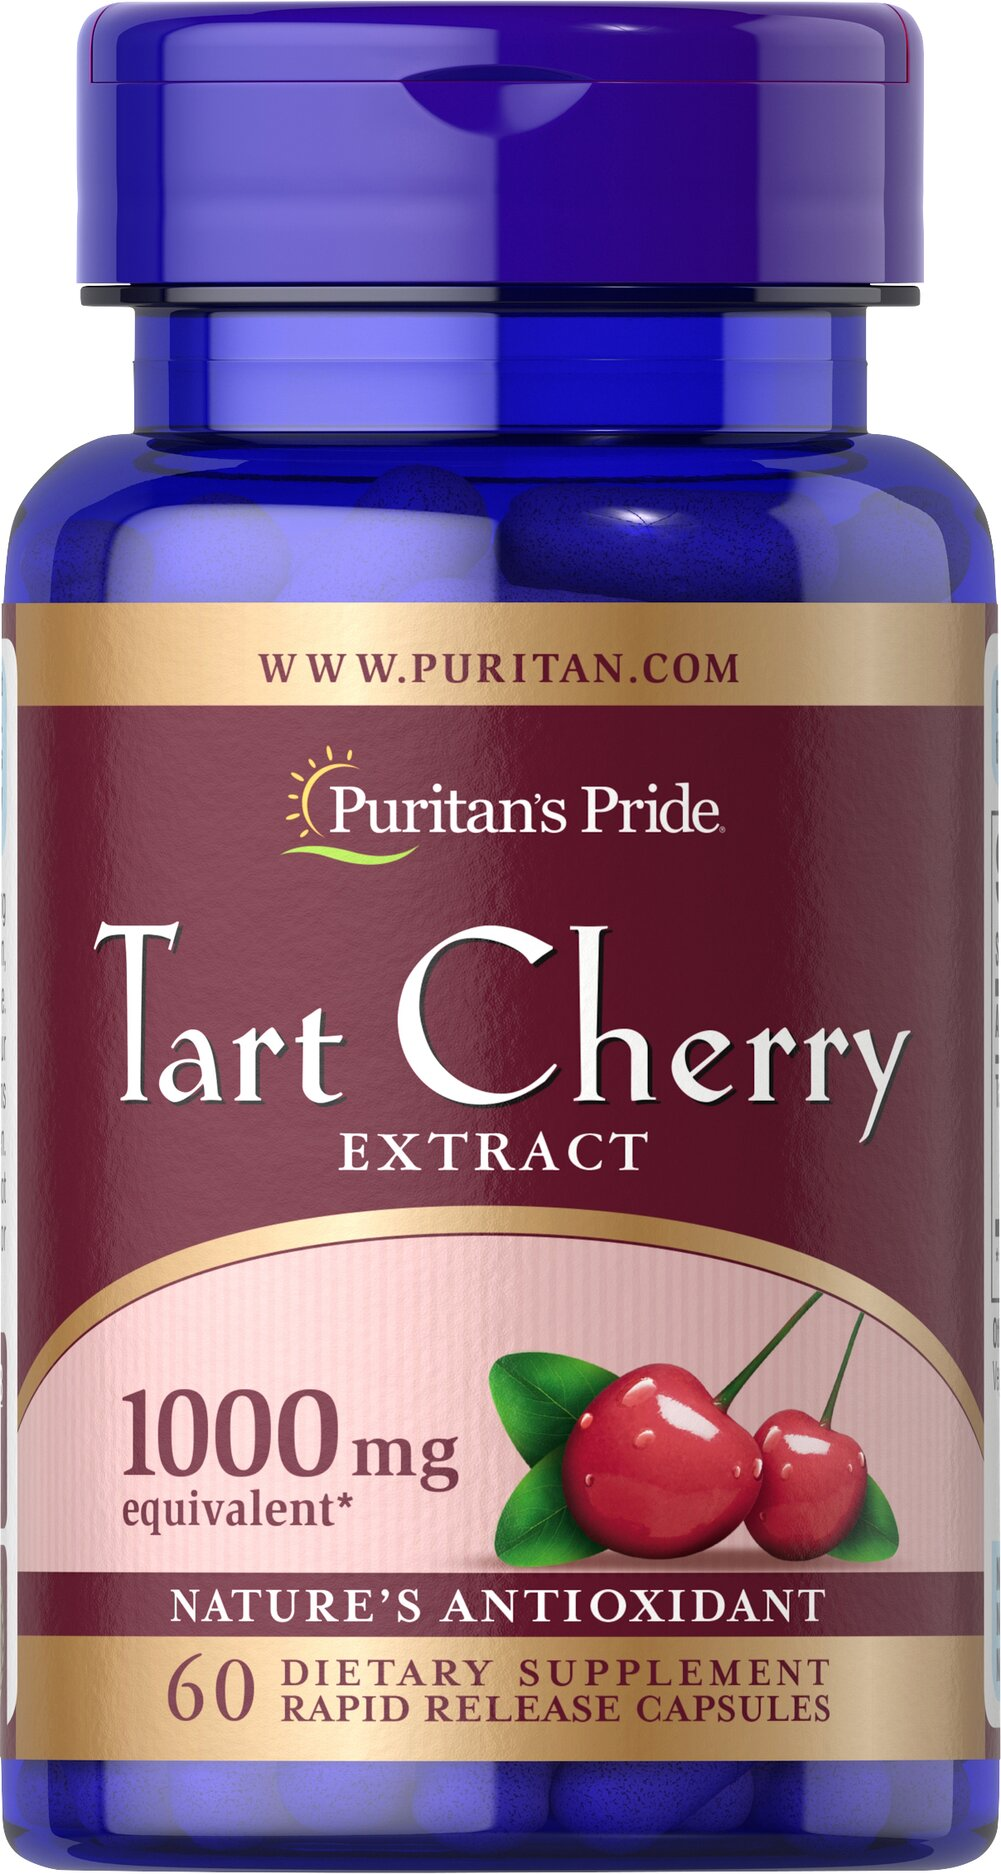 Tart Cherry Extract 1000 mg <p>Cherries are known for their natural content of antioxidants and other beneficial components. Now you can easily obtain the benefits of Tart Cherry in our convenient Tart Cherry capsules. Each serving contains a 4:1 extract of Tart Cherry to help retain the most important constituents.</p> 60 Capsules 1000 mg $17.99